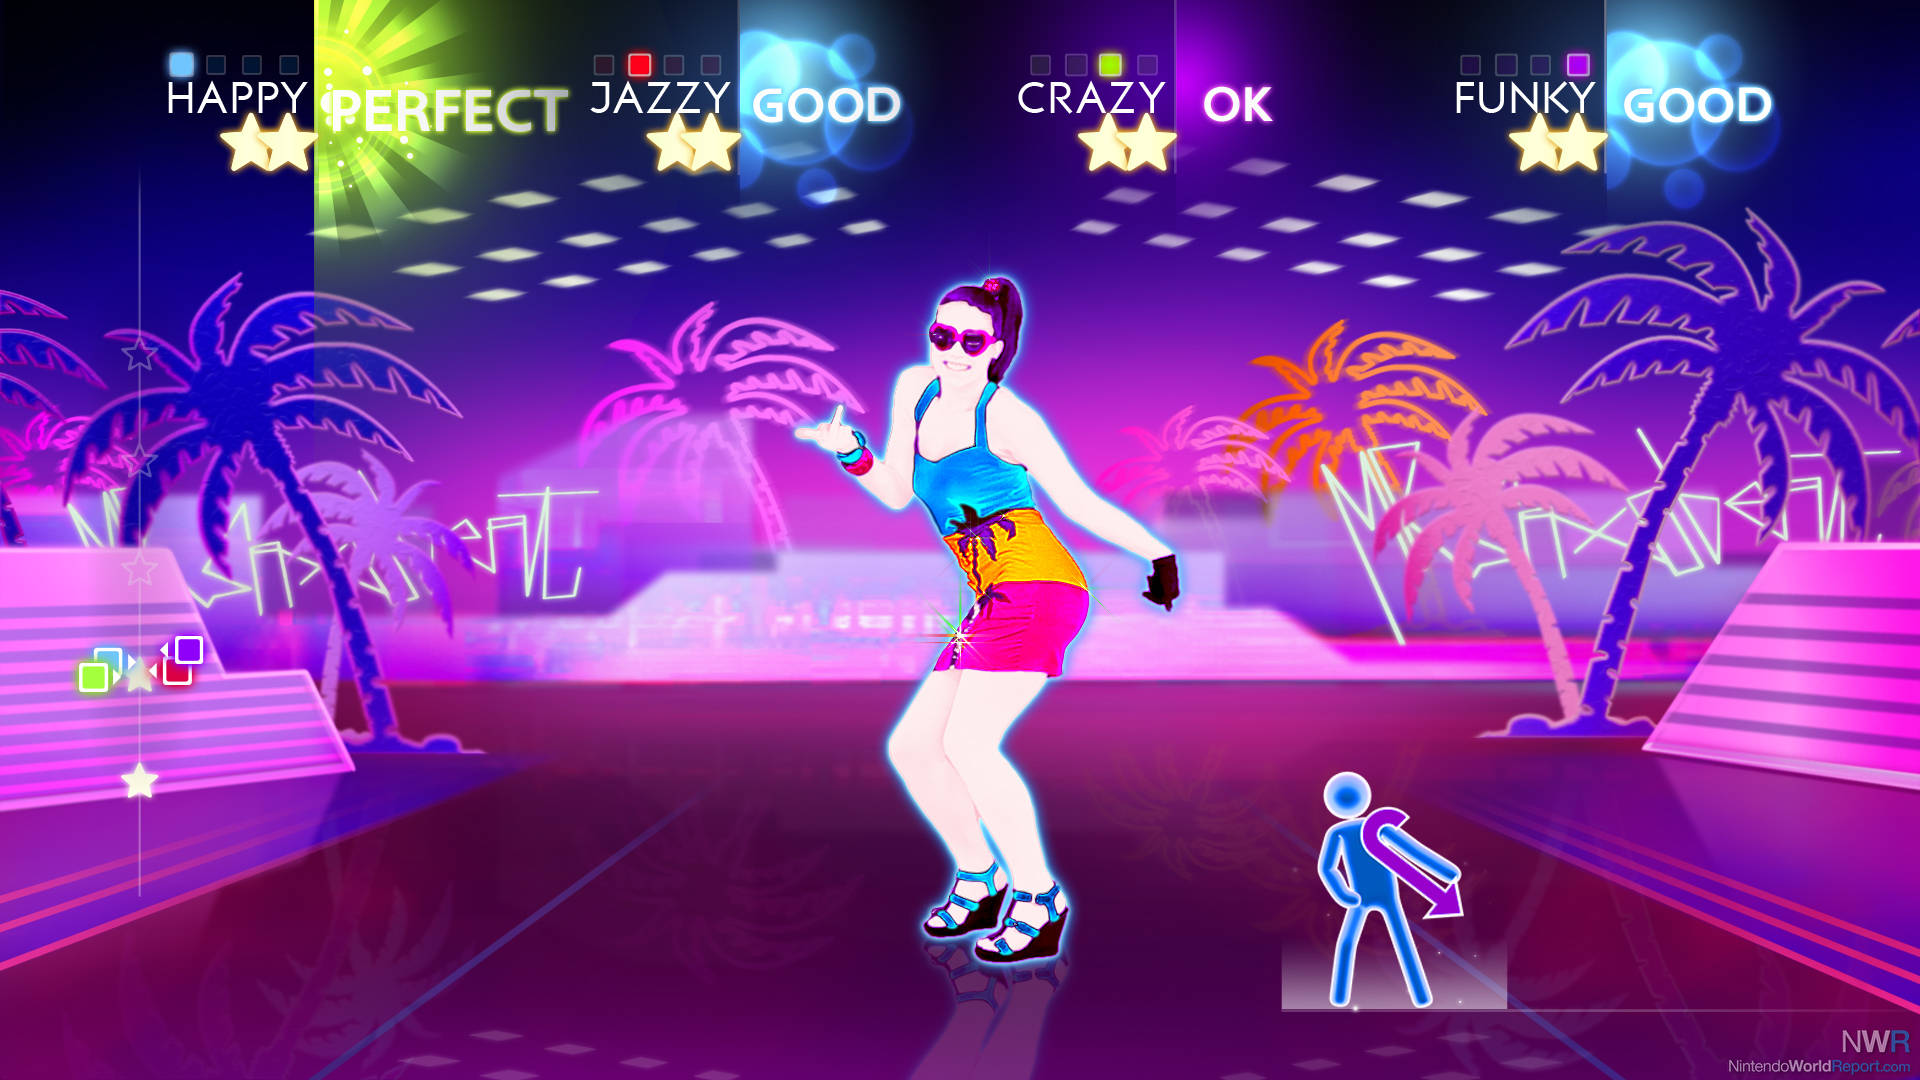 Just Dance Game For Xbox 360 : Just dance 4 game nintendo world report